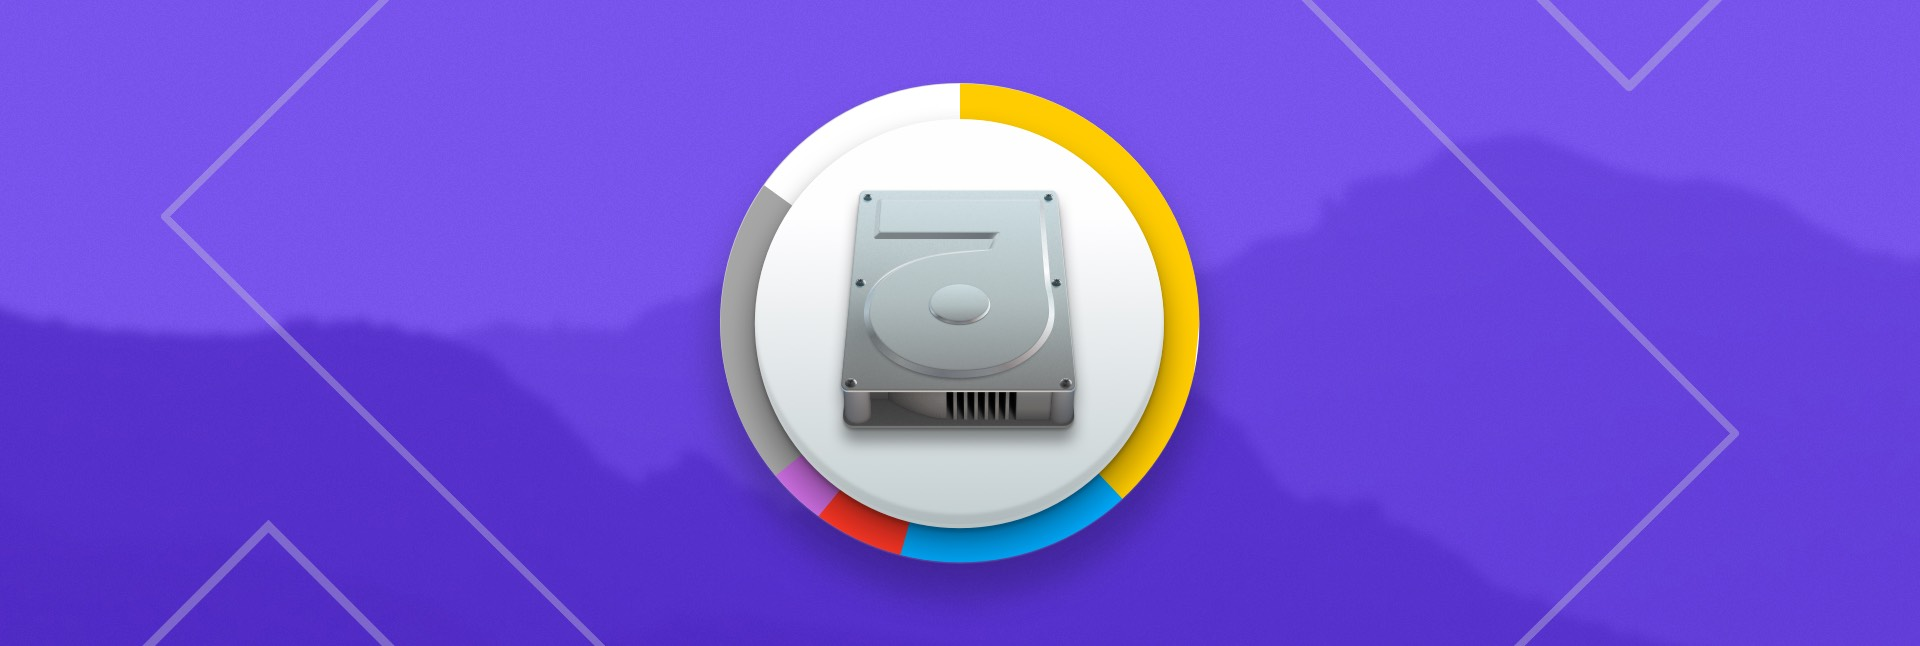 how to go to backup on mac